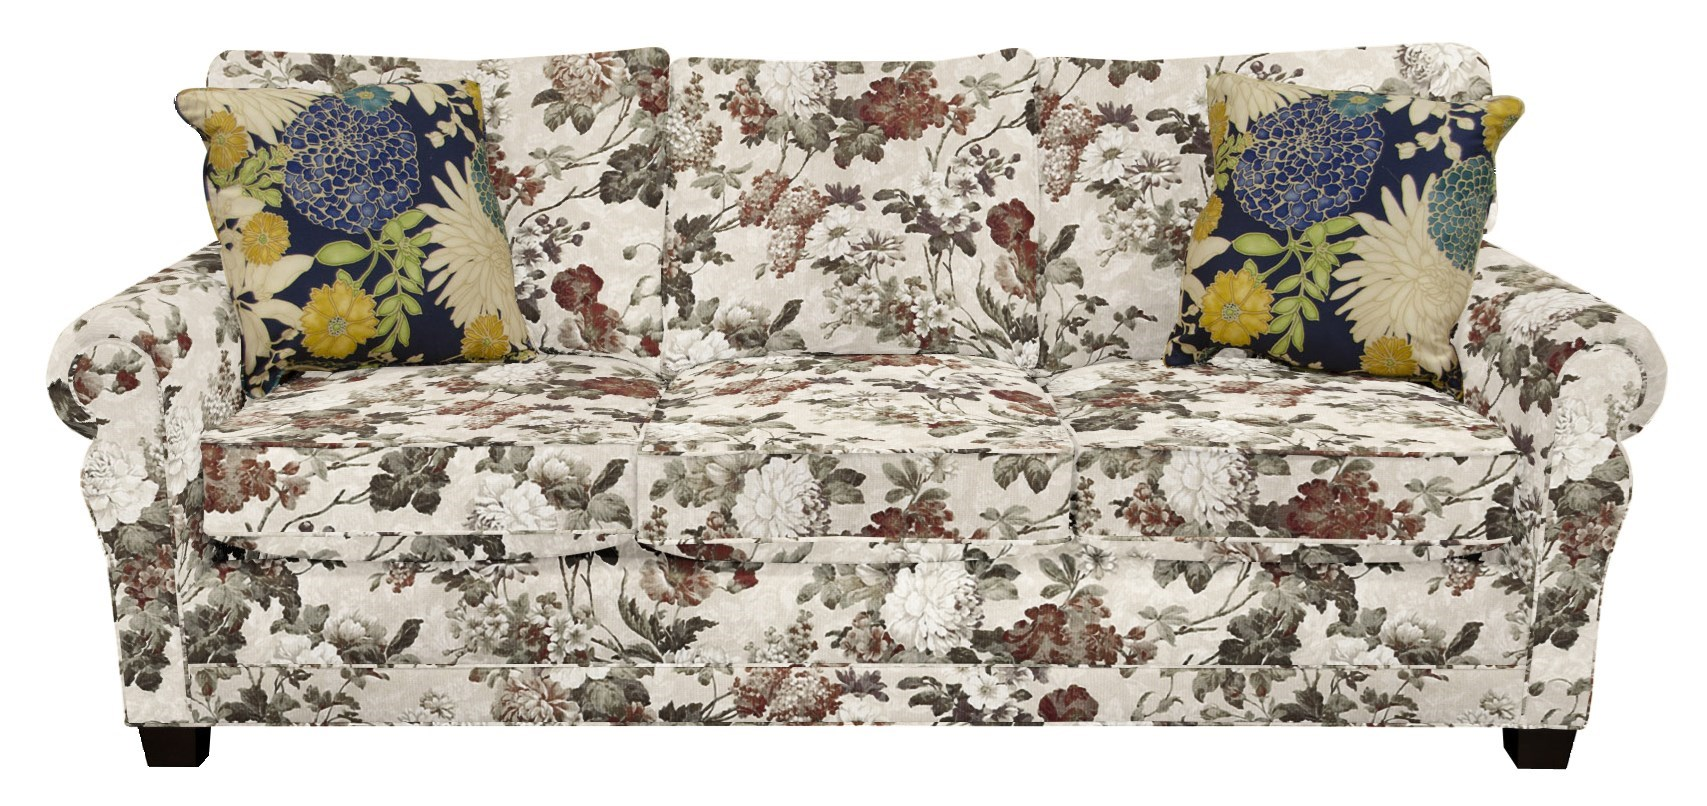 Sofa Outlet Paisley Lorand Living Room Sofa With Traditional Style By England At Efo Furniture Outlet